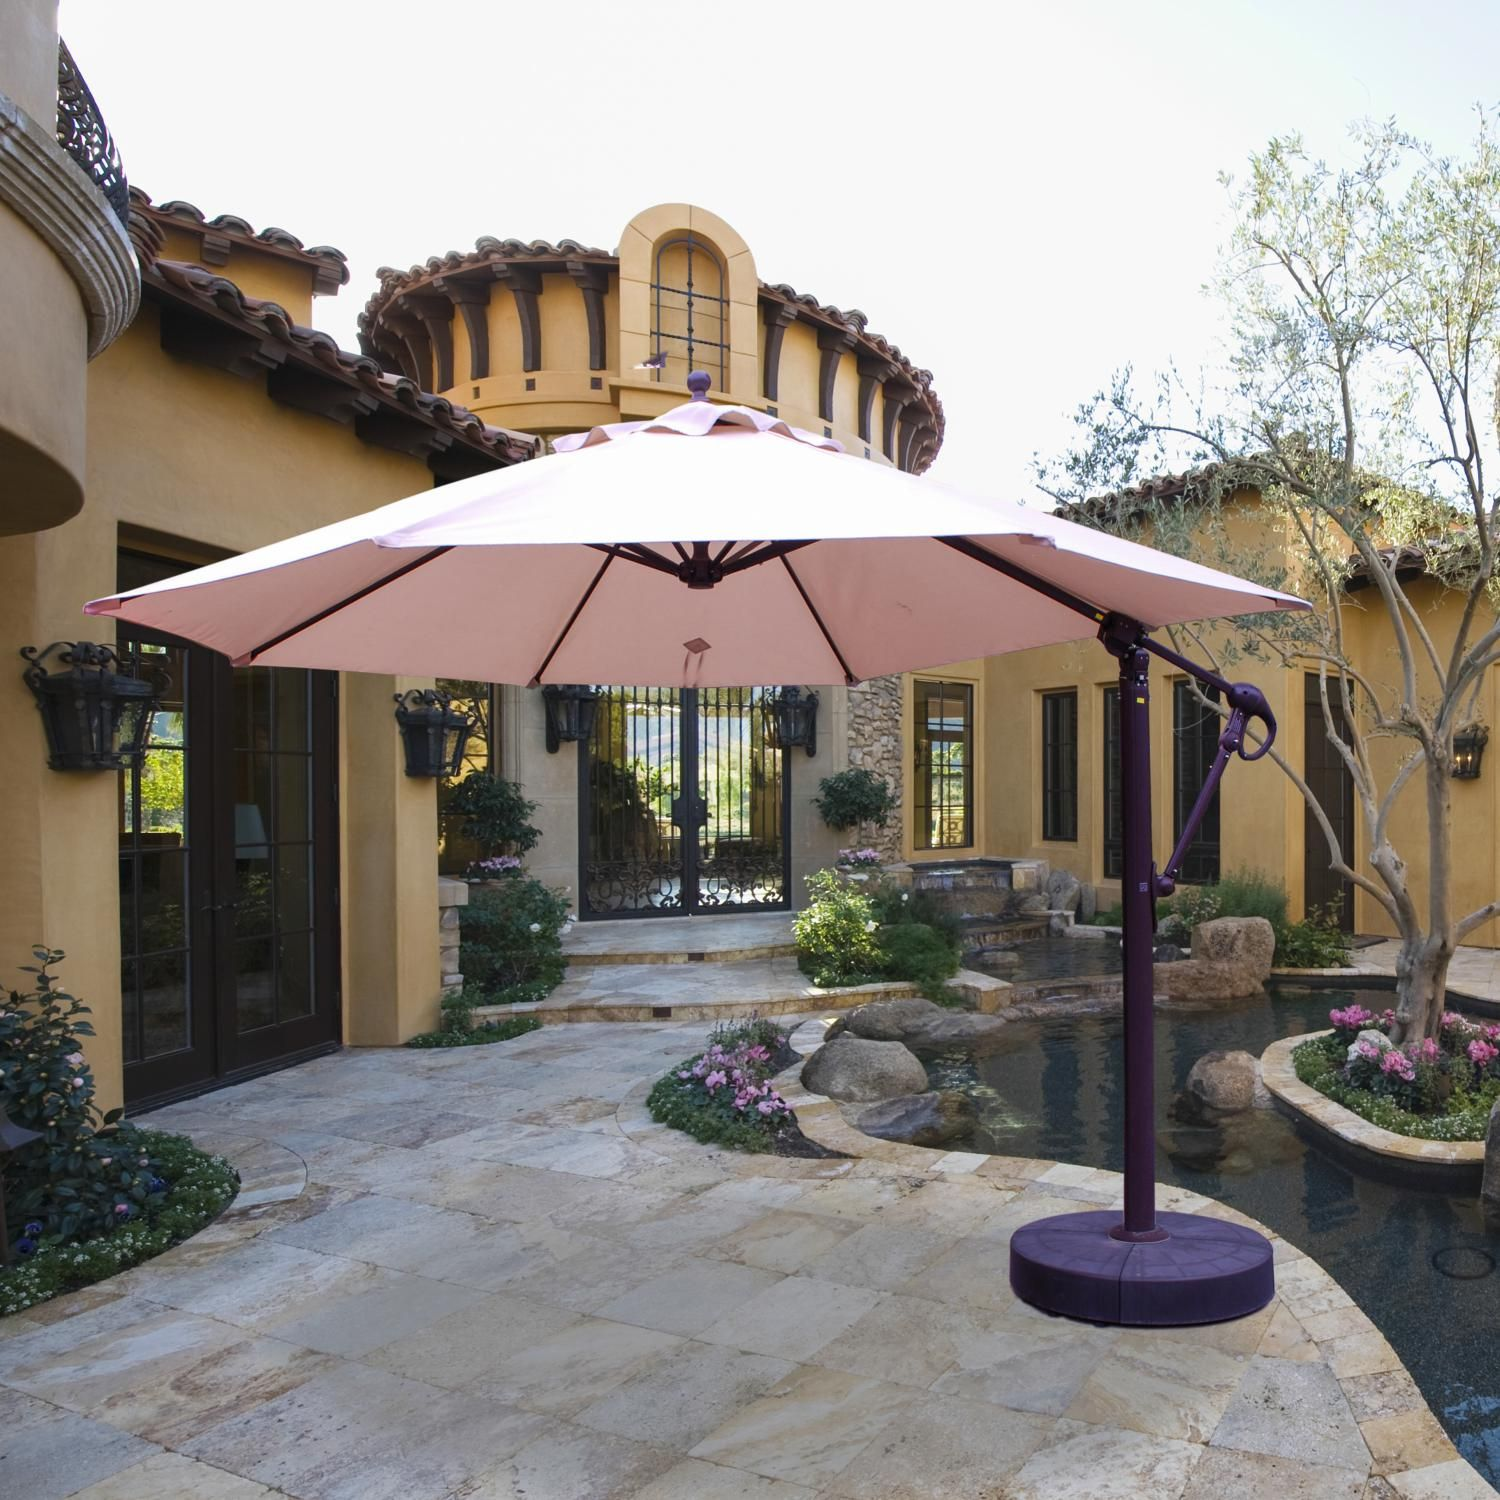 Patio Umbrella Flexible Placement Options